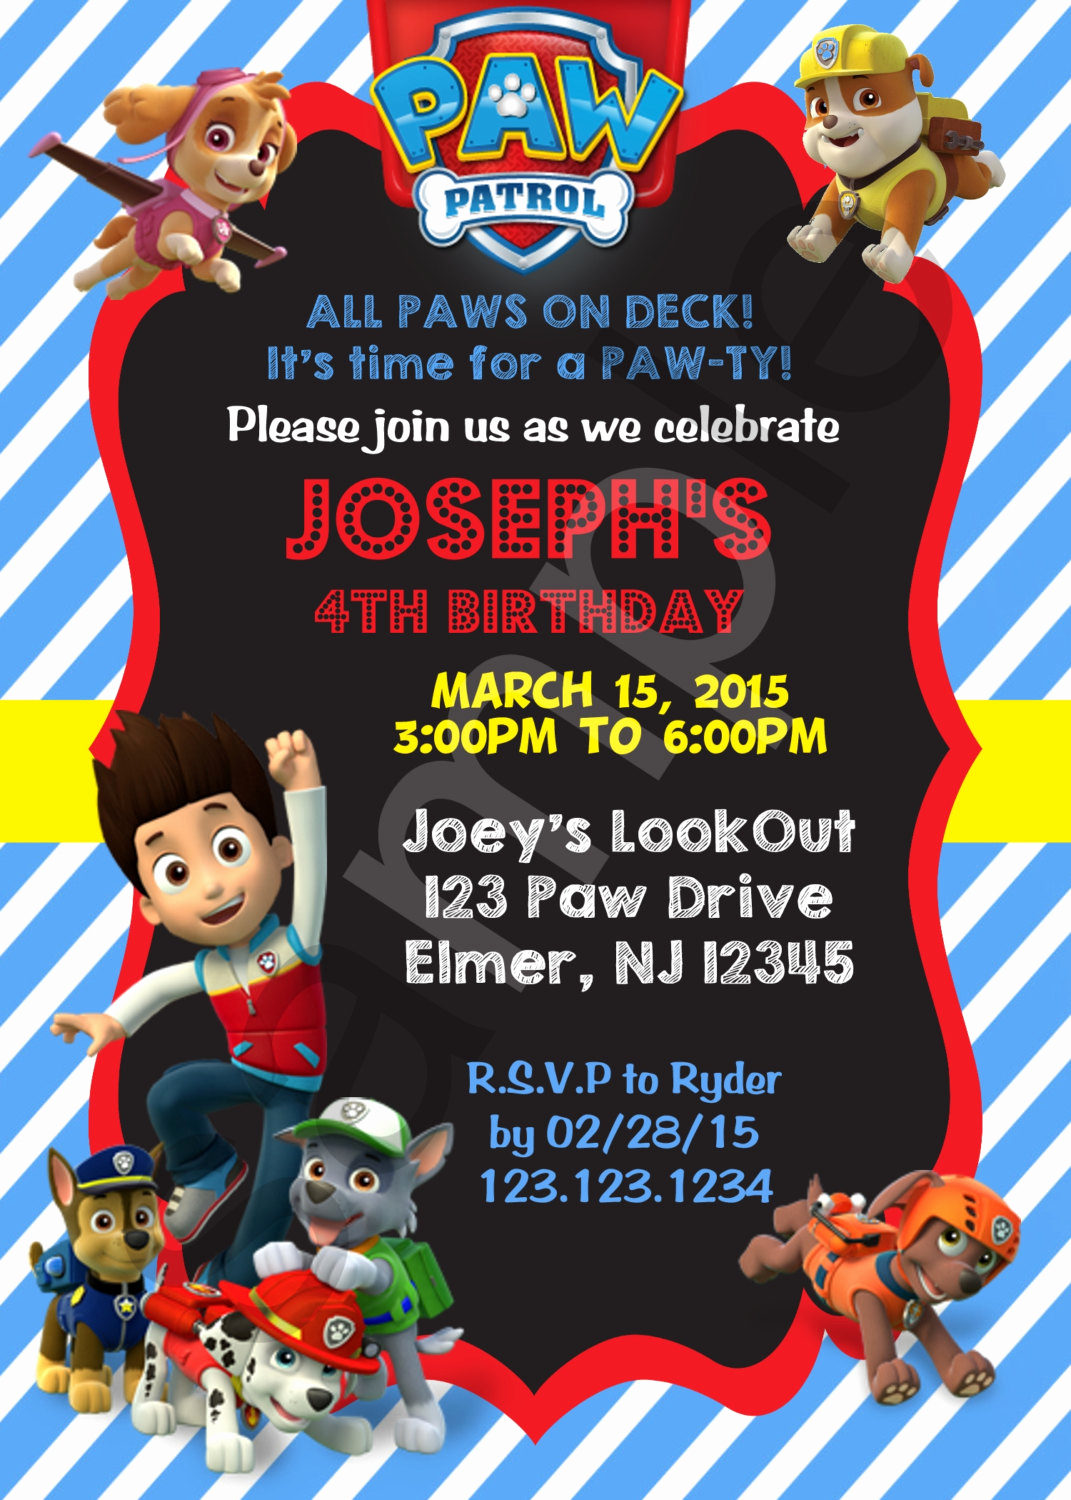 Paw Patrol Invitation Template Blank Beautiful Paw Patrol Birthday Invitation Digital File On Luulla